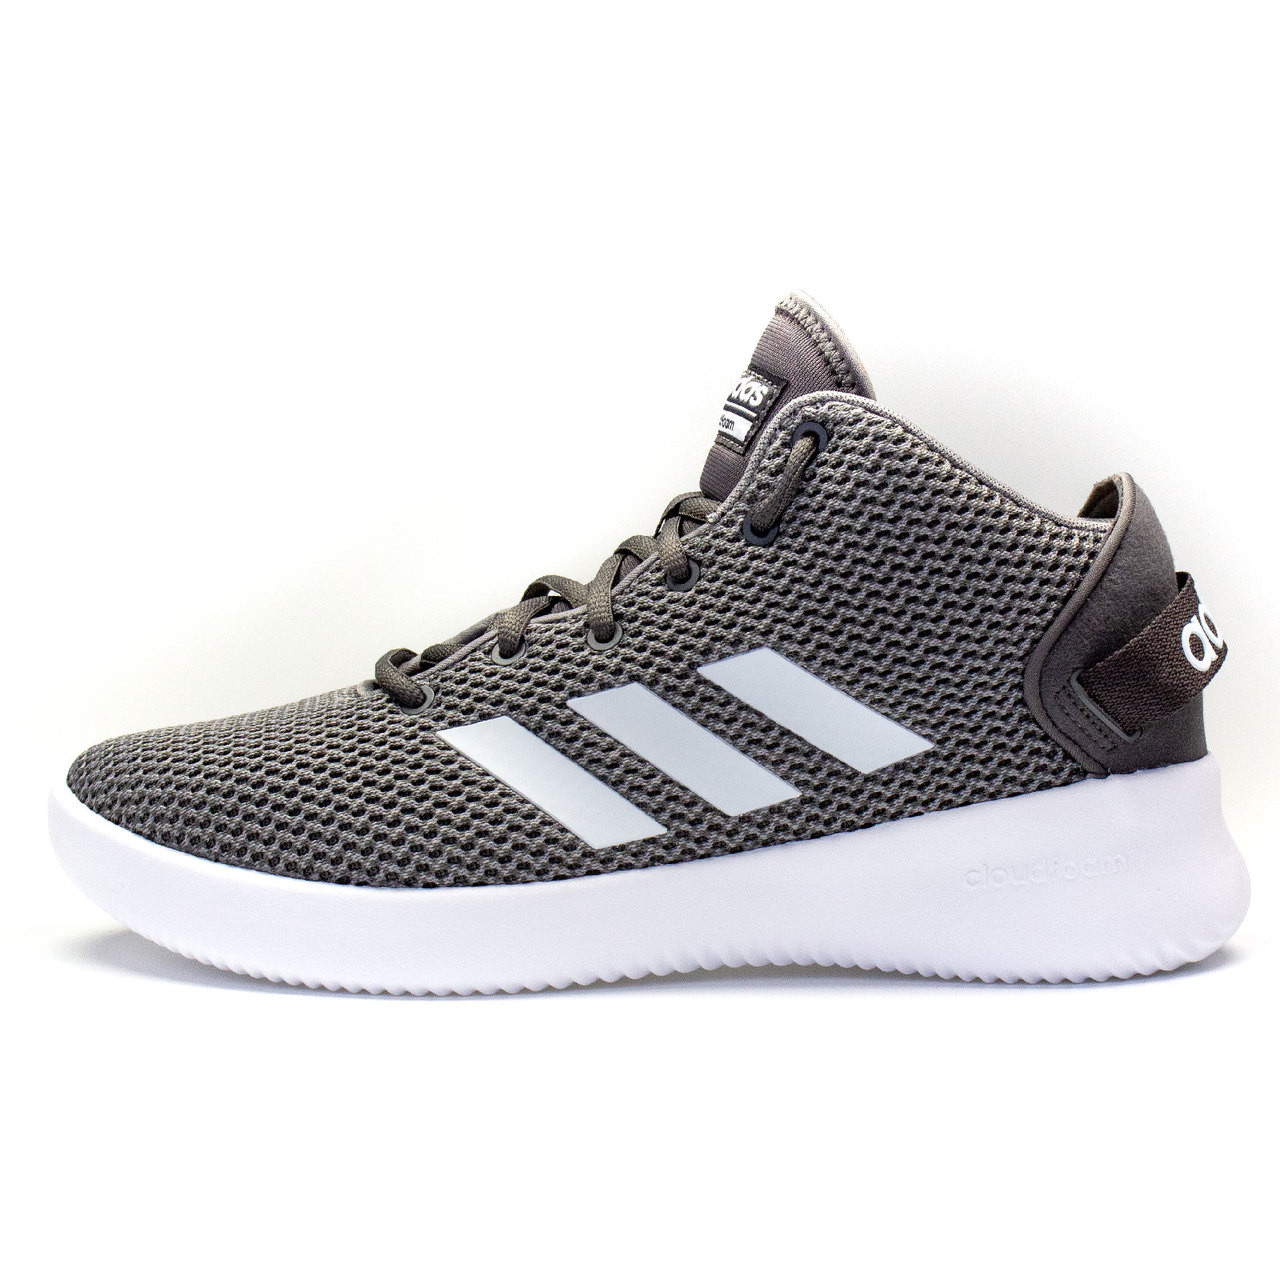 Adidas CloudFoam Refresh Mid Men's  Basketball Schuhes   Men's Best Price 4205b7